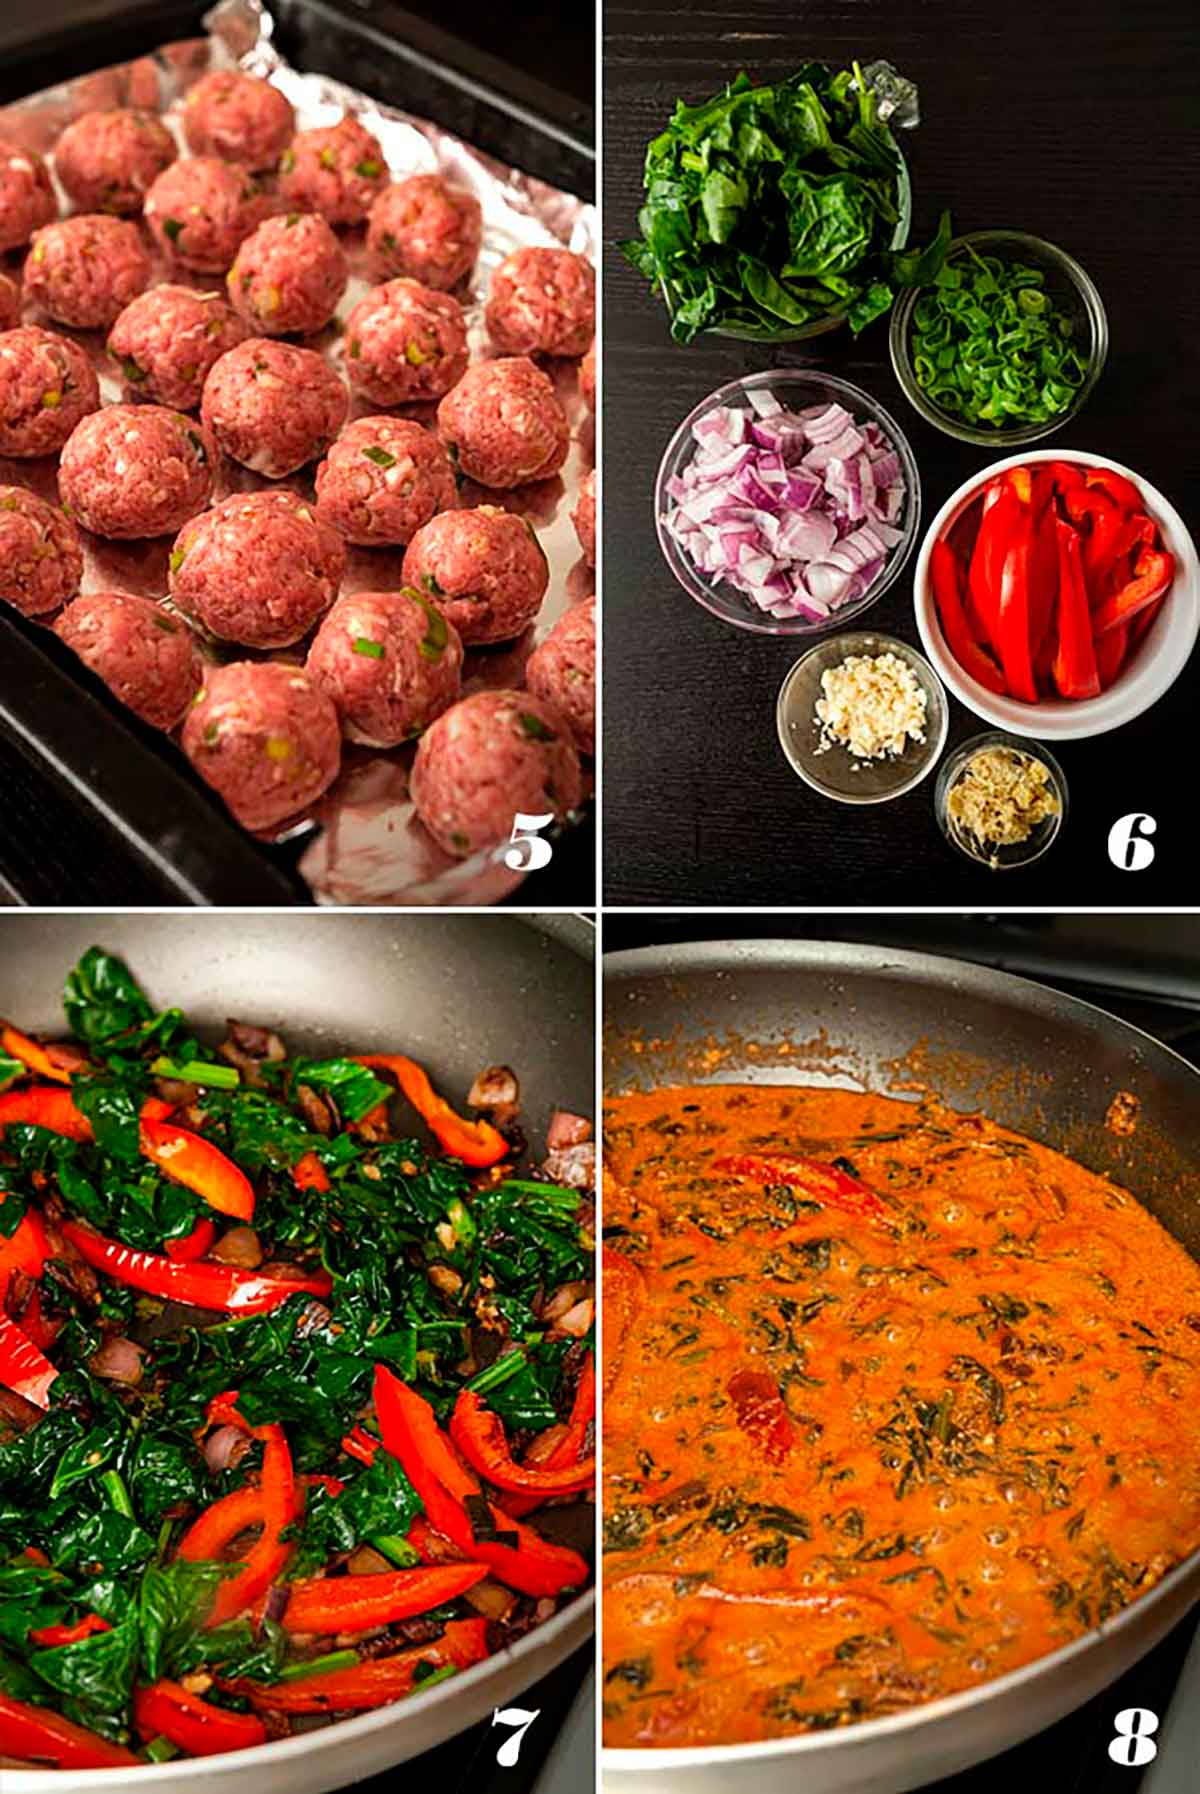 A collage of 4 numbered images showing how to make turkey meatballs and curry sauce.